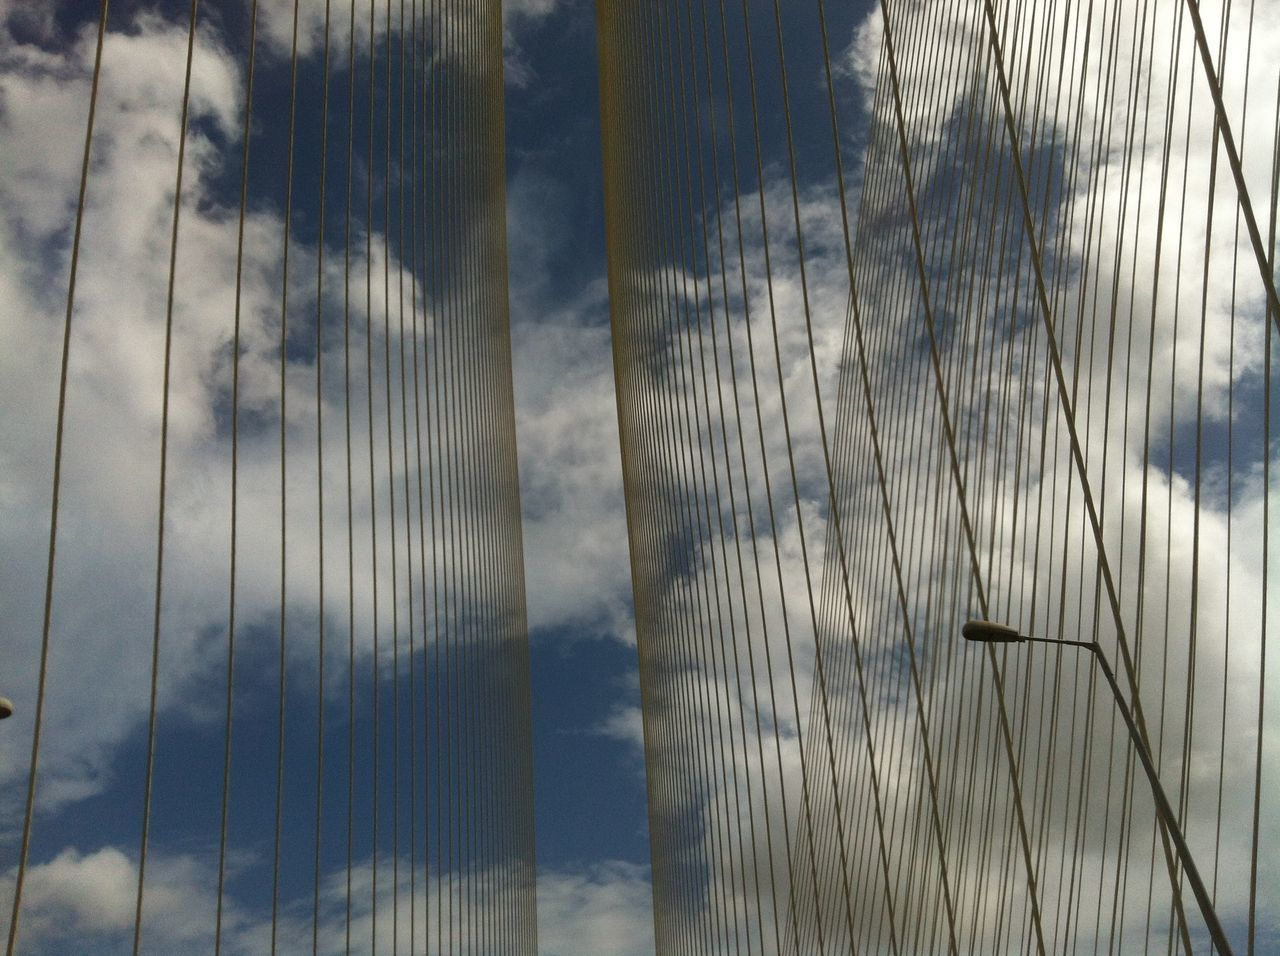 Blue Cabled Brid Cloud Engineering Growth Lines And Shapes Outdoors Sky World Worli Worli Sealink